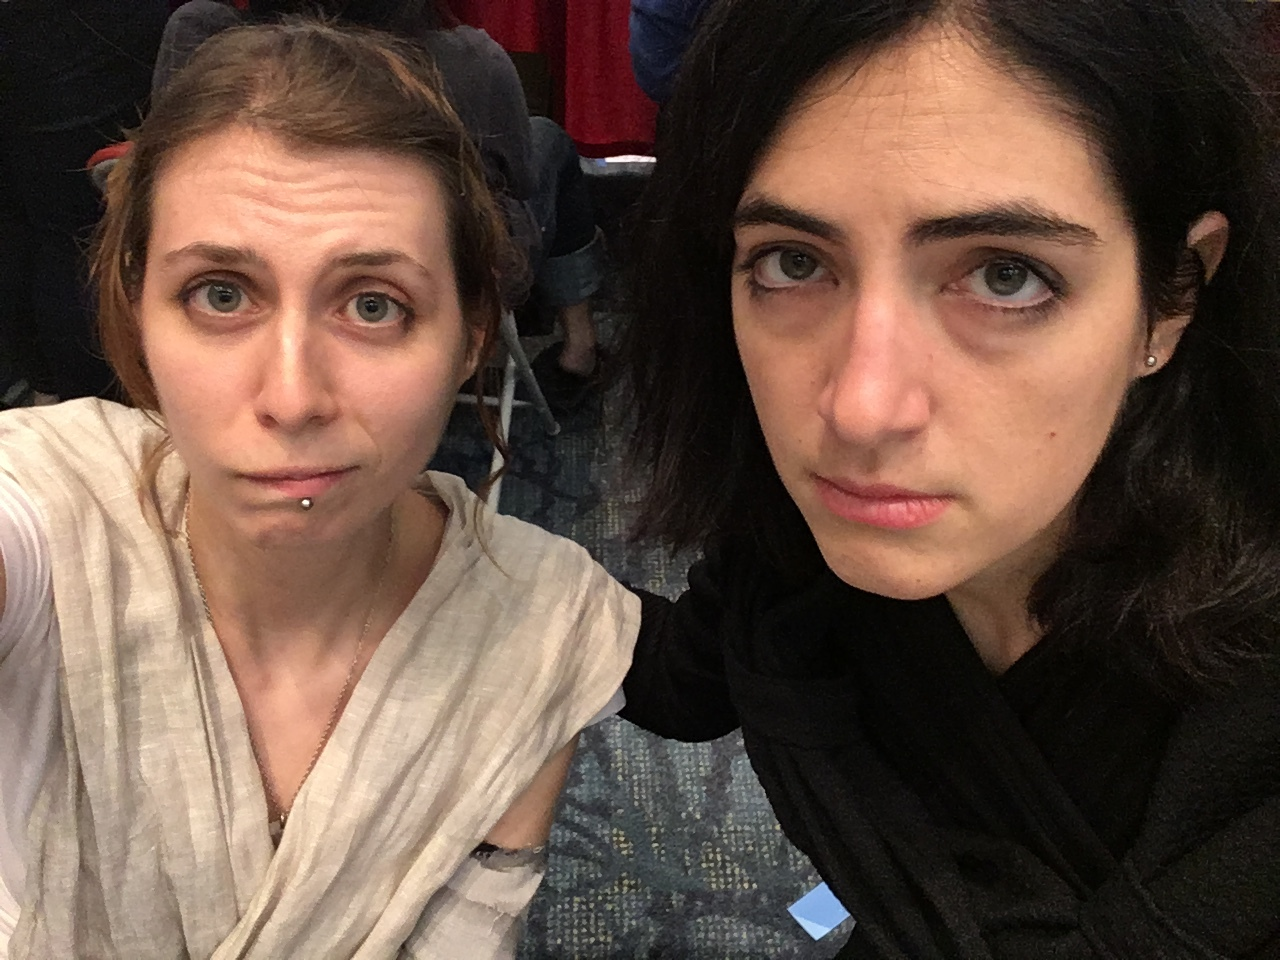 Rey and Kylo are bummed that we looked for Finn and Hux ALL DAY and never found them!